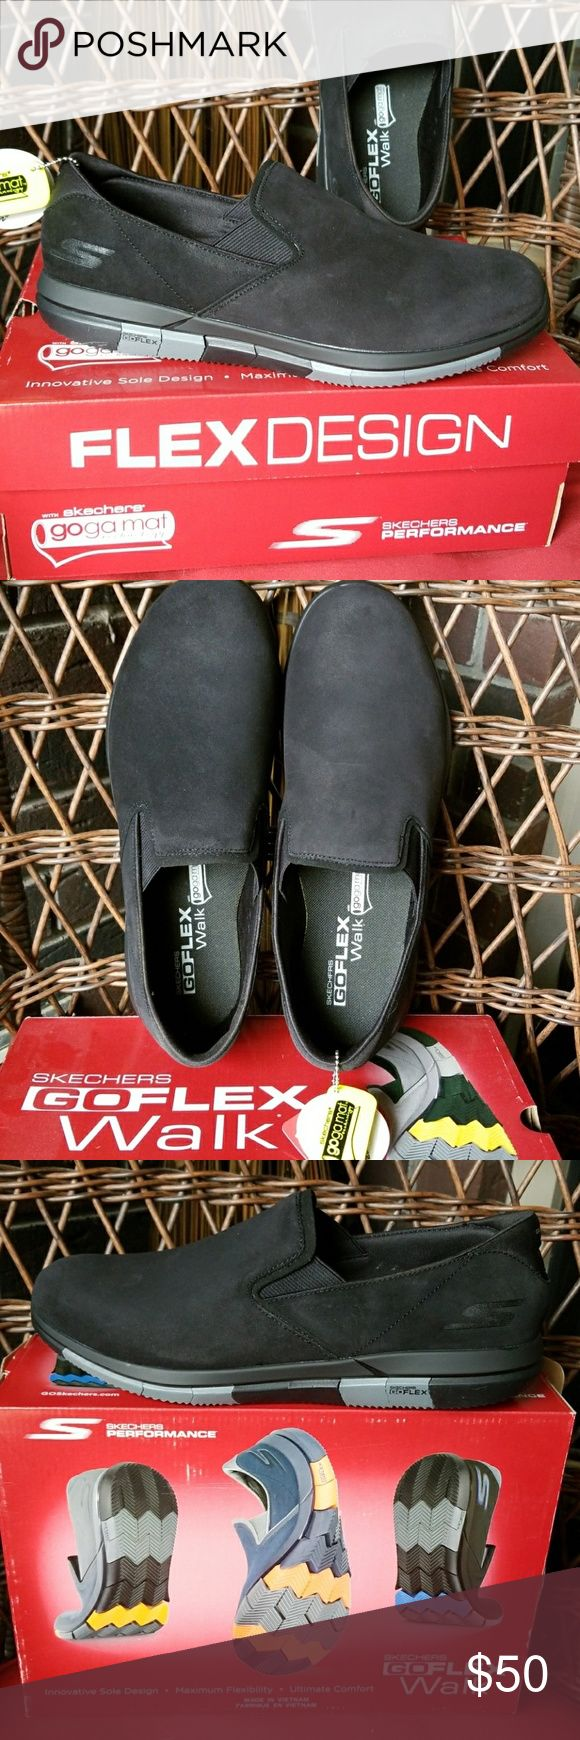 Skechers go flex walk Skechers go flex walk mens slip on walking shoe . BLACK/GRAY . SIZE 10.  SHIP WITHOUT THE ORIGINAL BOX.  Brand new ,unused. Skechers Shoes Loafers & Slip-Ons